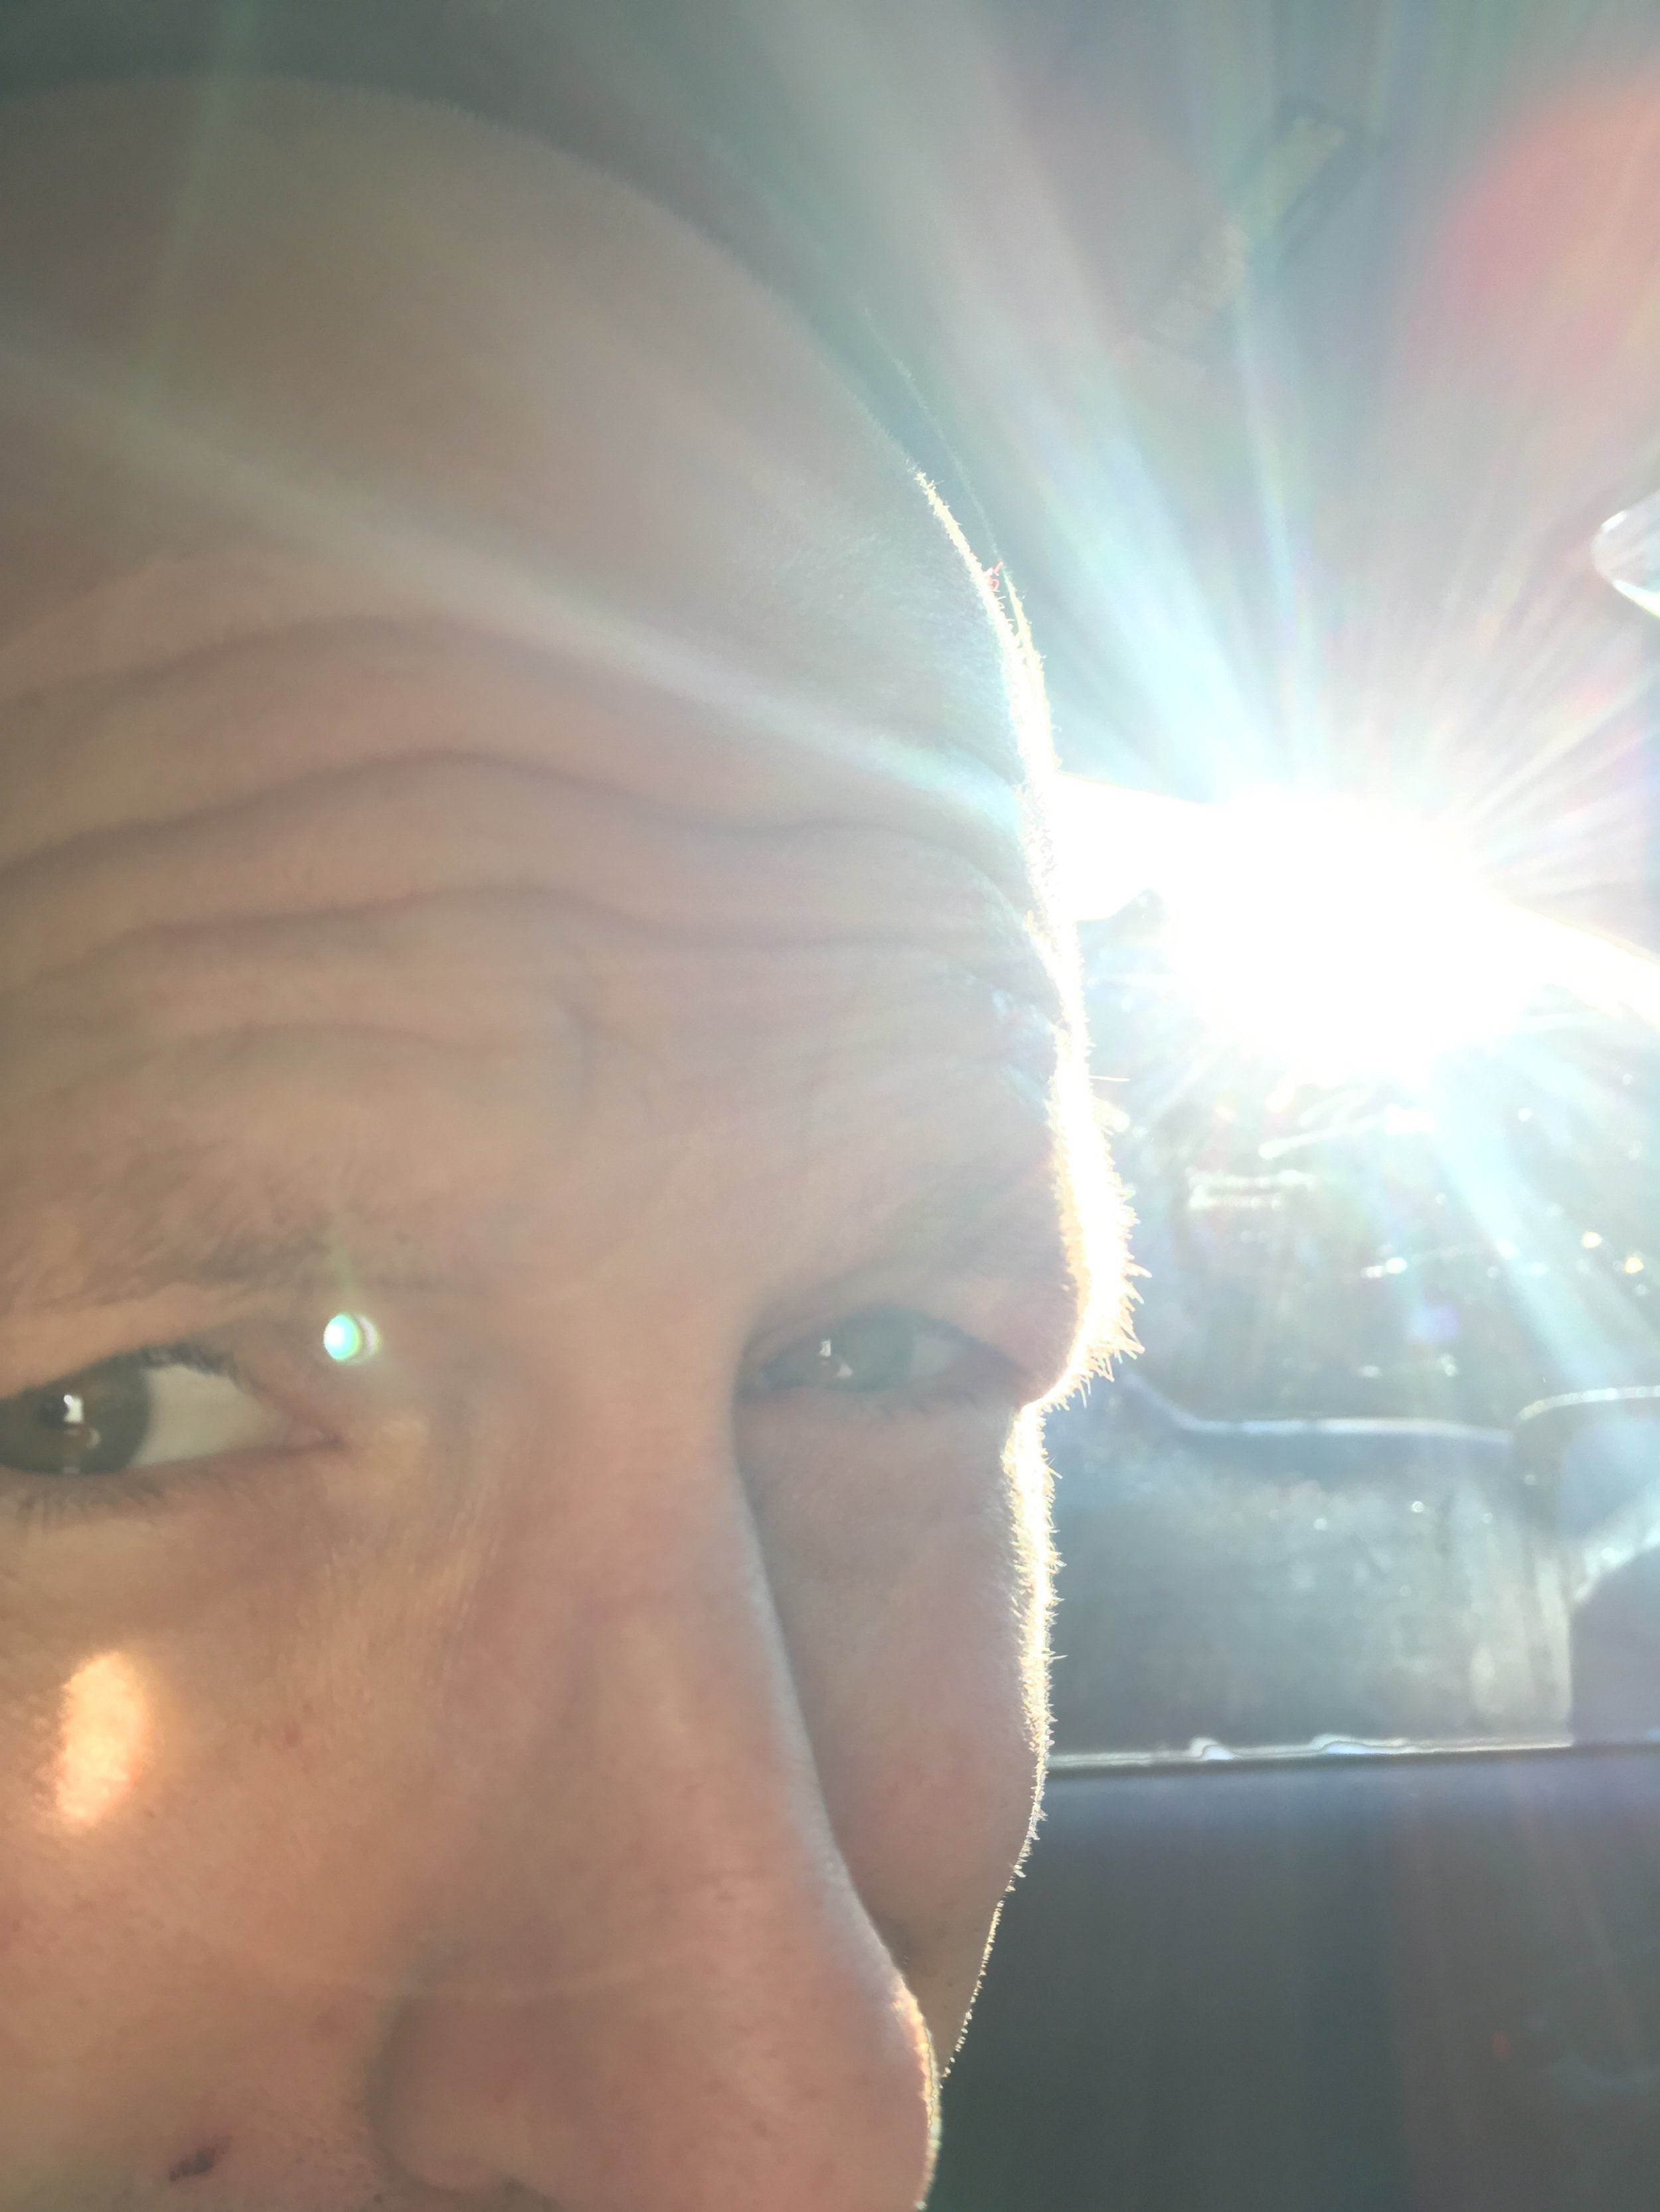 Photo by my daughter. She specializes in extreme close-ups of the dog, and now of me.